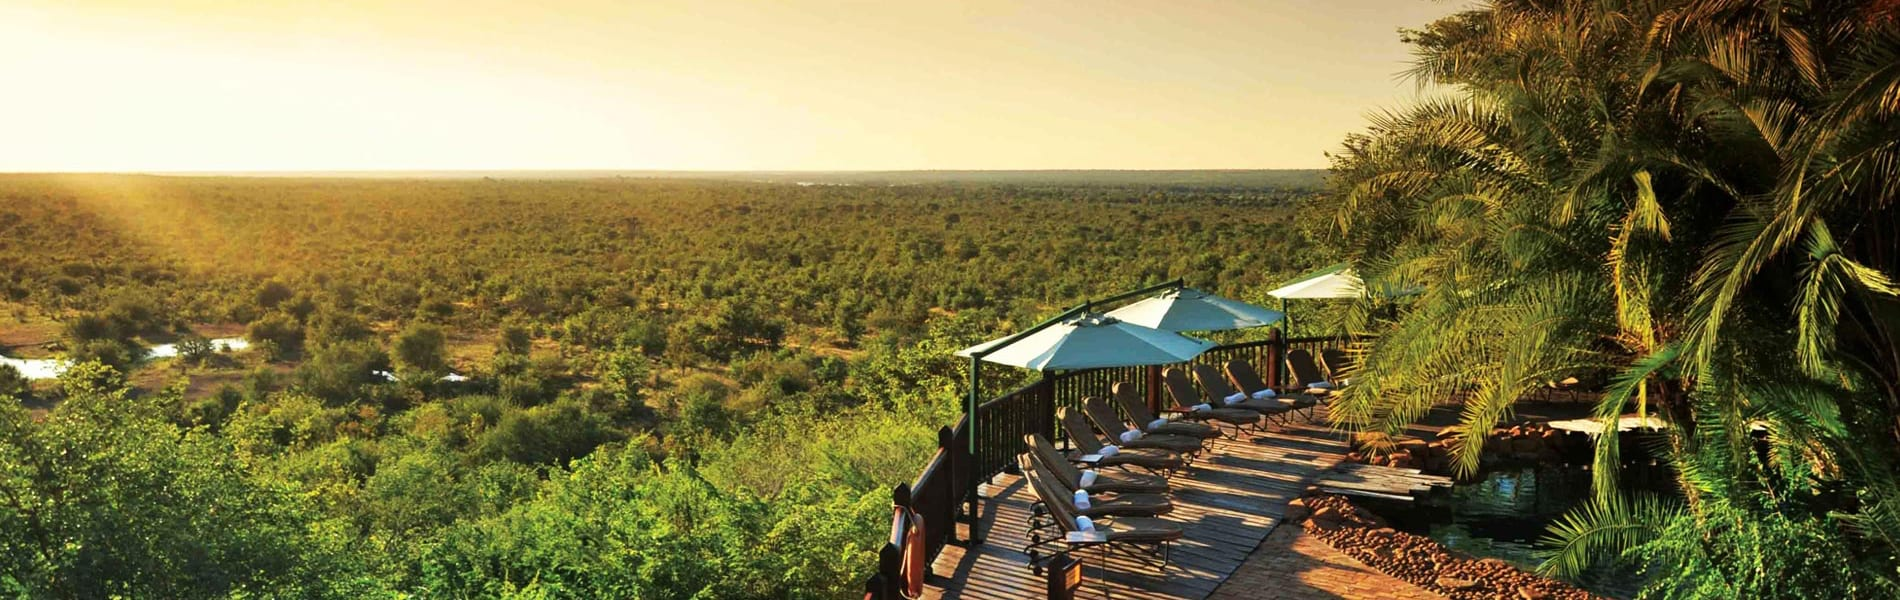 Victoria Falls Safari Lodge view